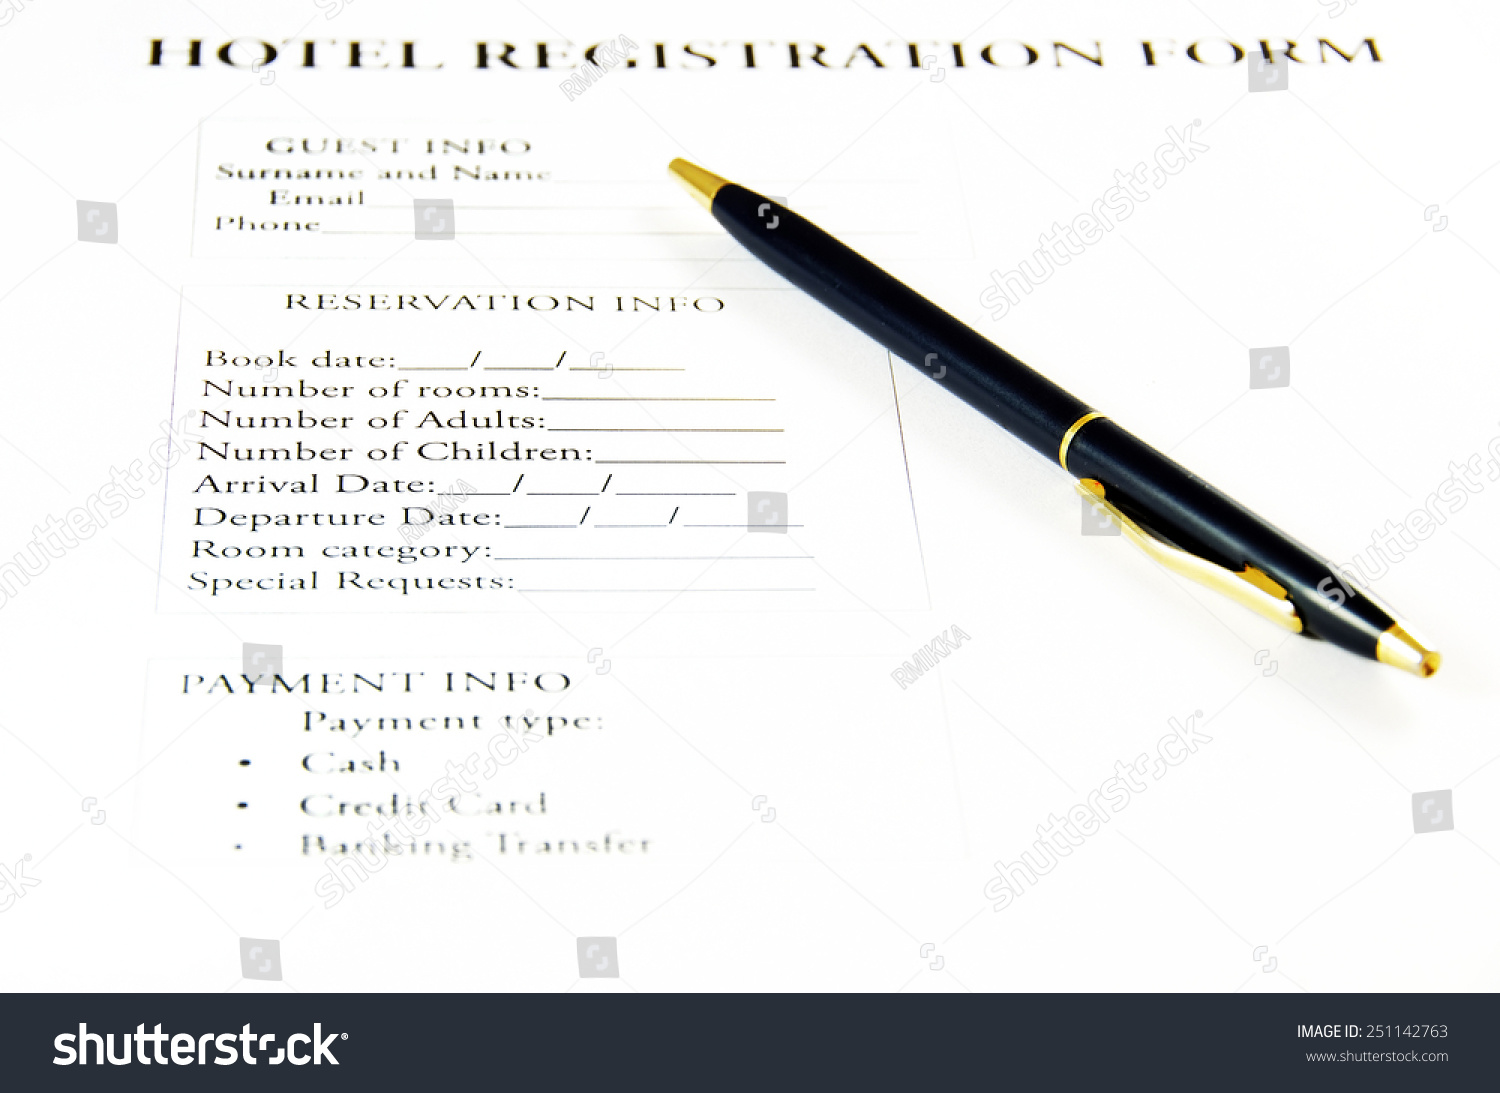 Blank hotel registration form stock photo royalty free 251142763 blank hotel registration form thecheapjerseys Gallery